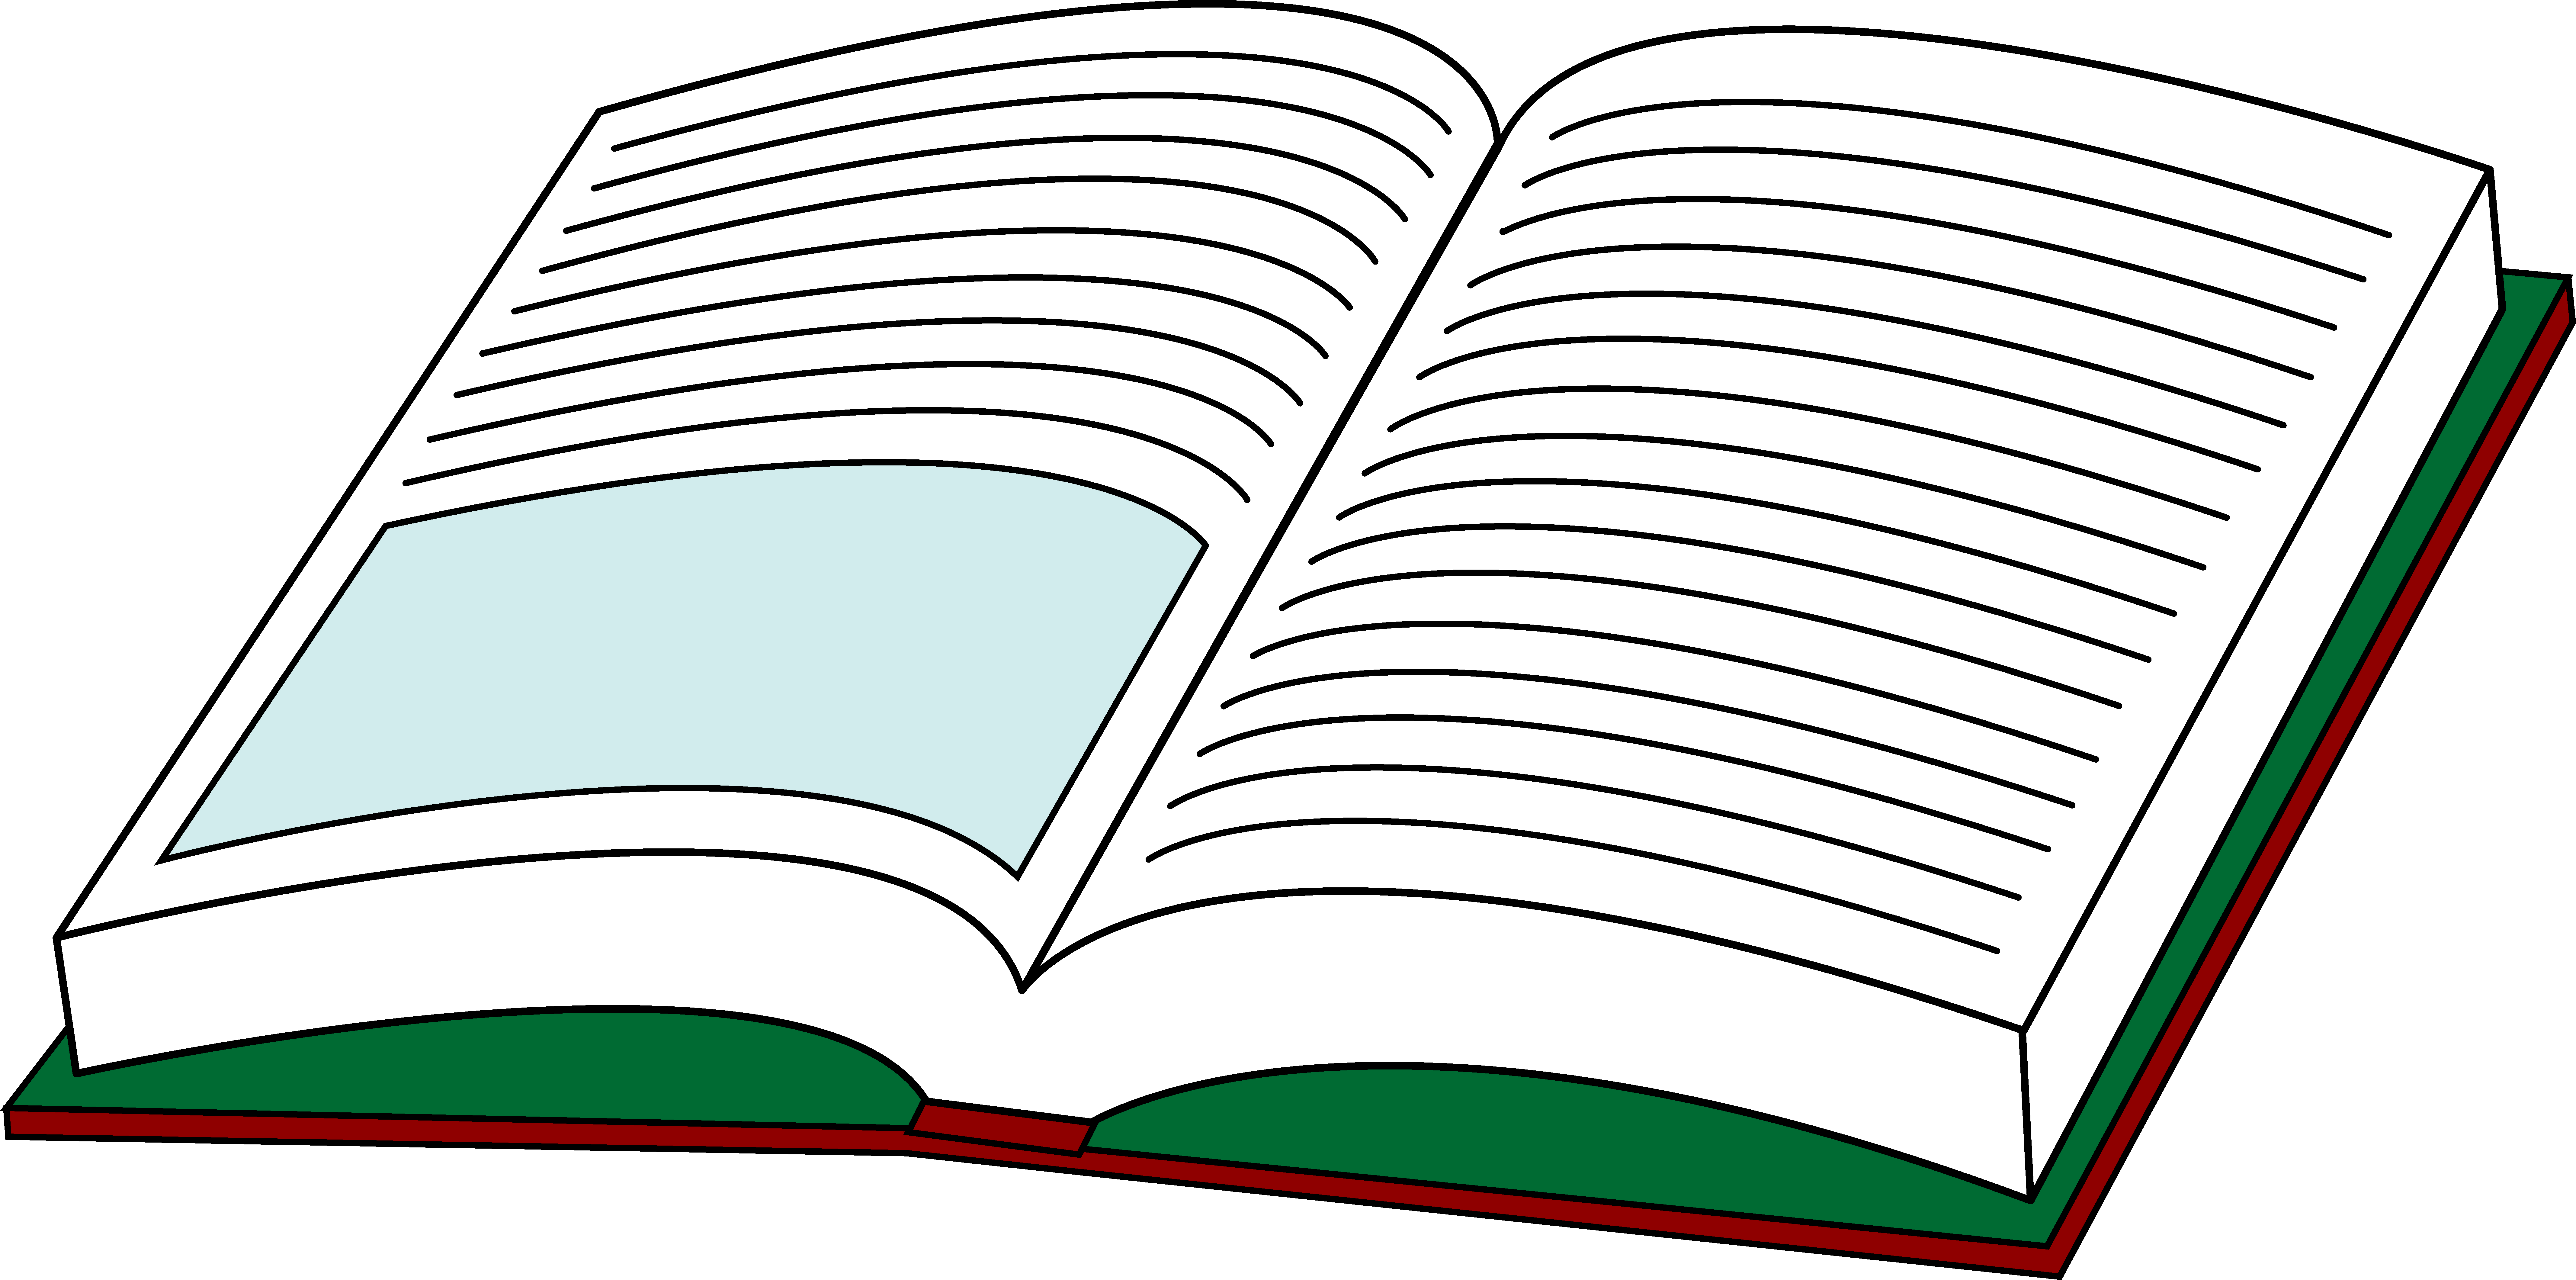 Hardcover 20clipart.